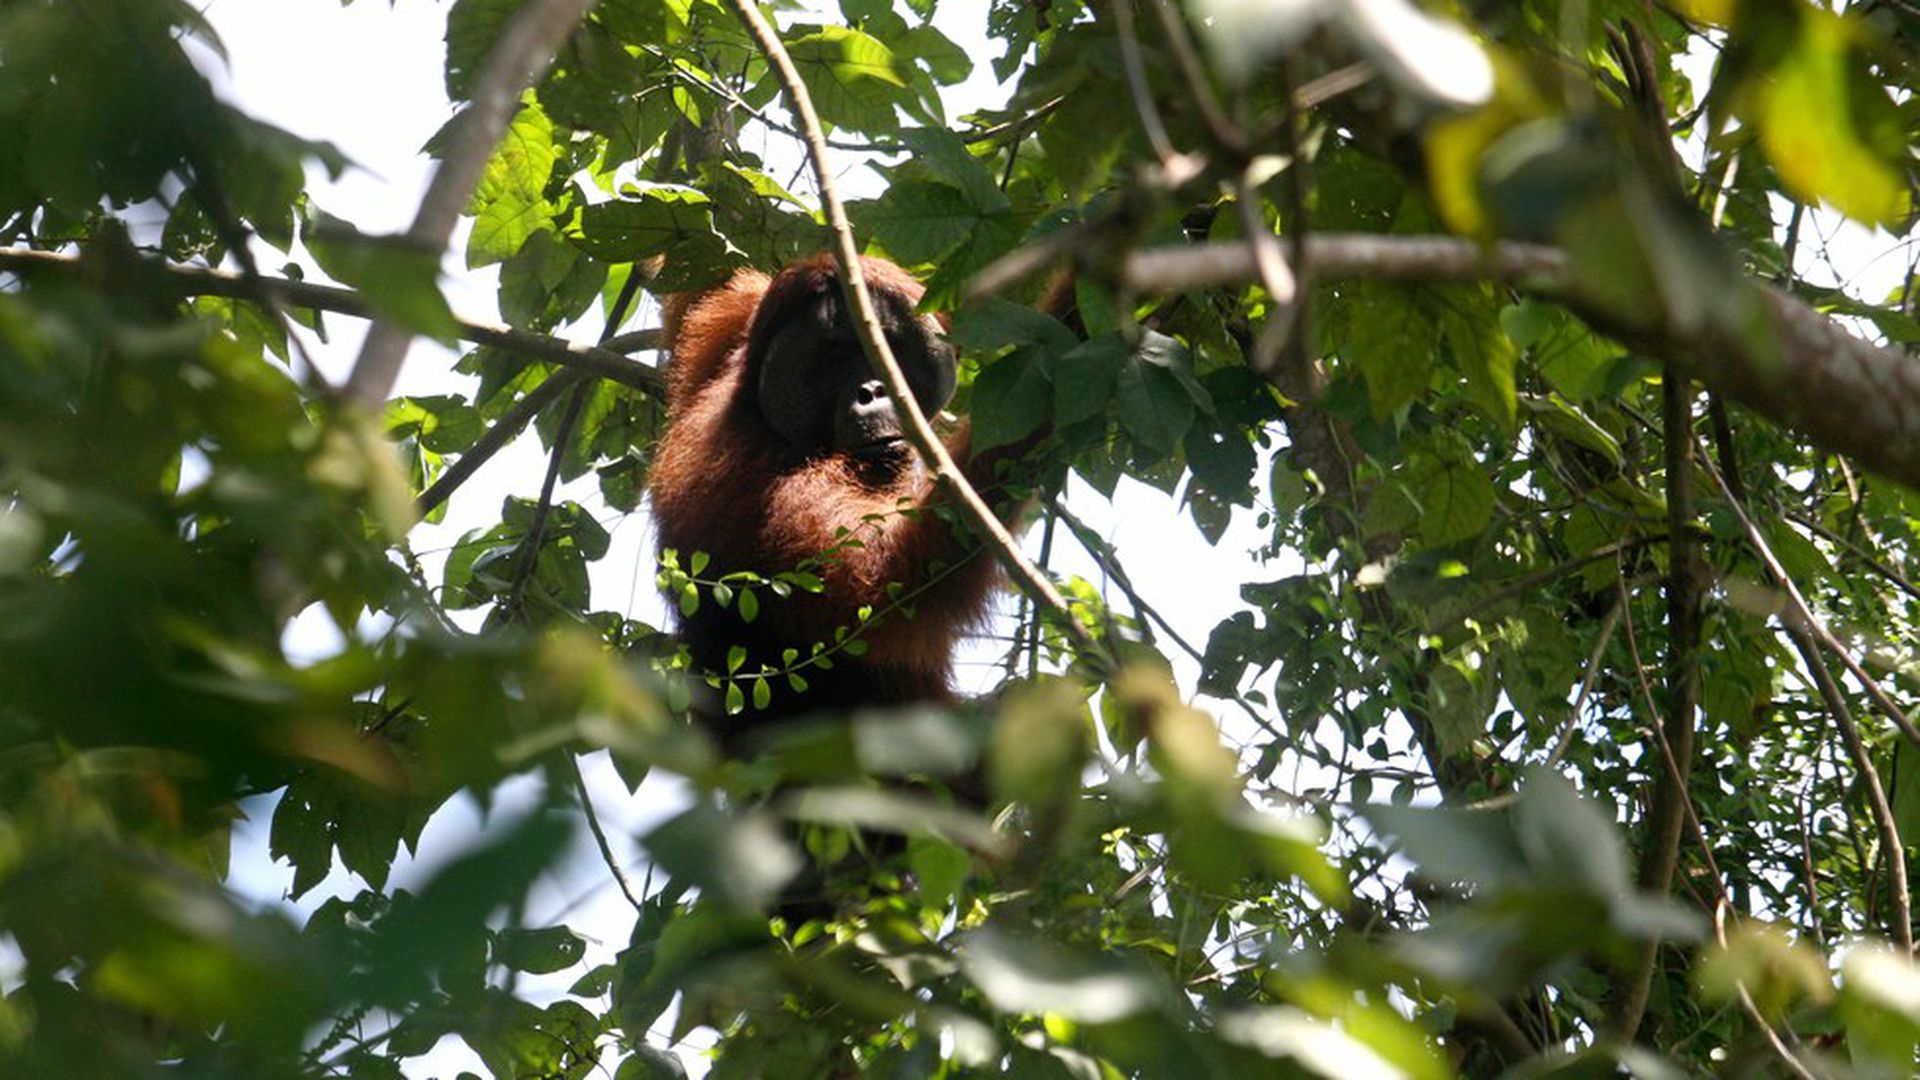 New great ape species is a rare find